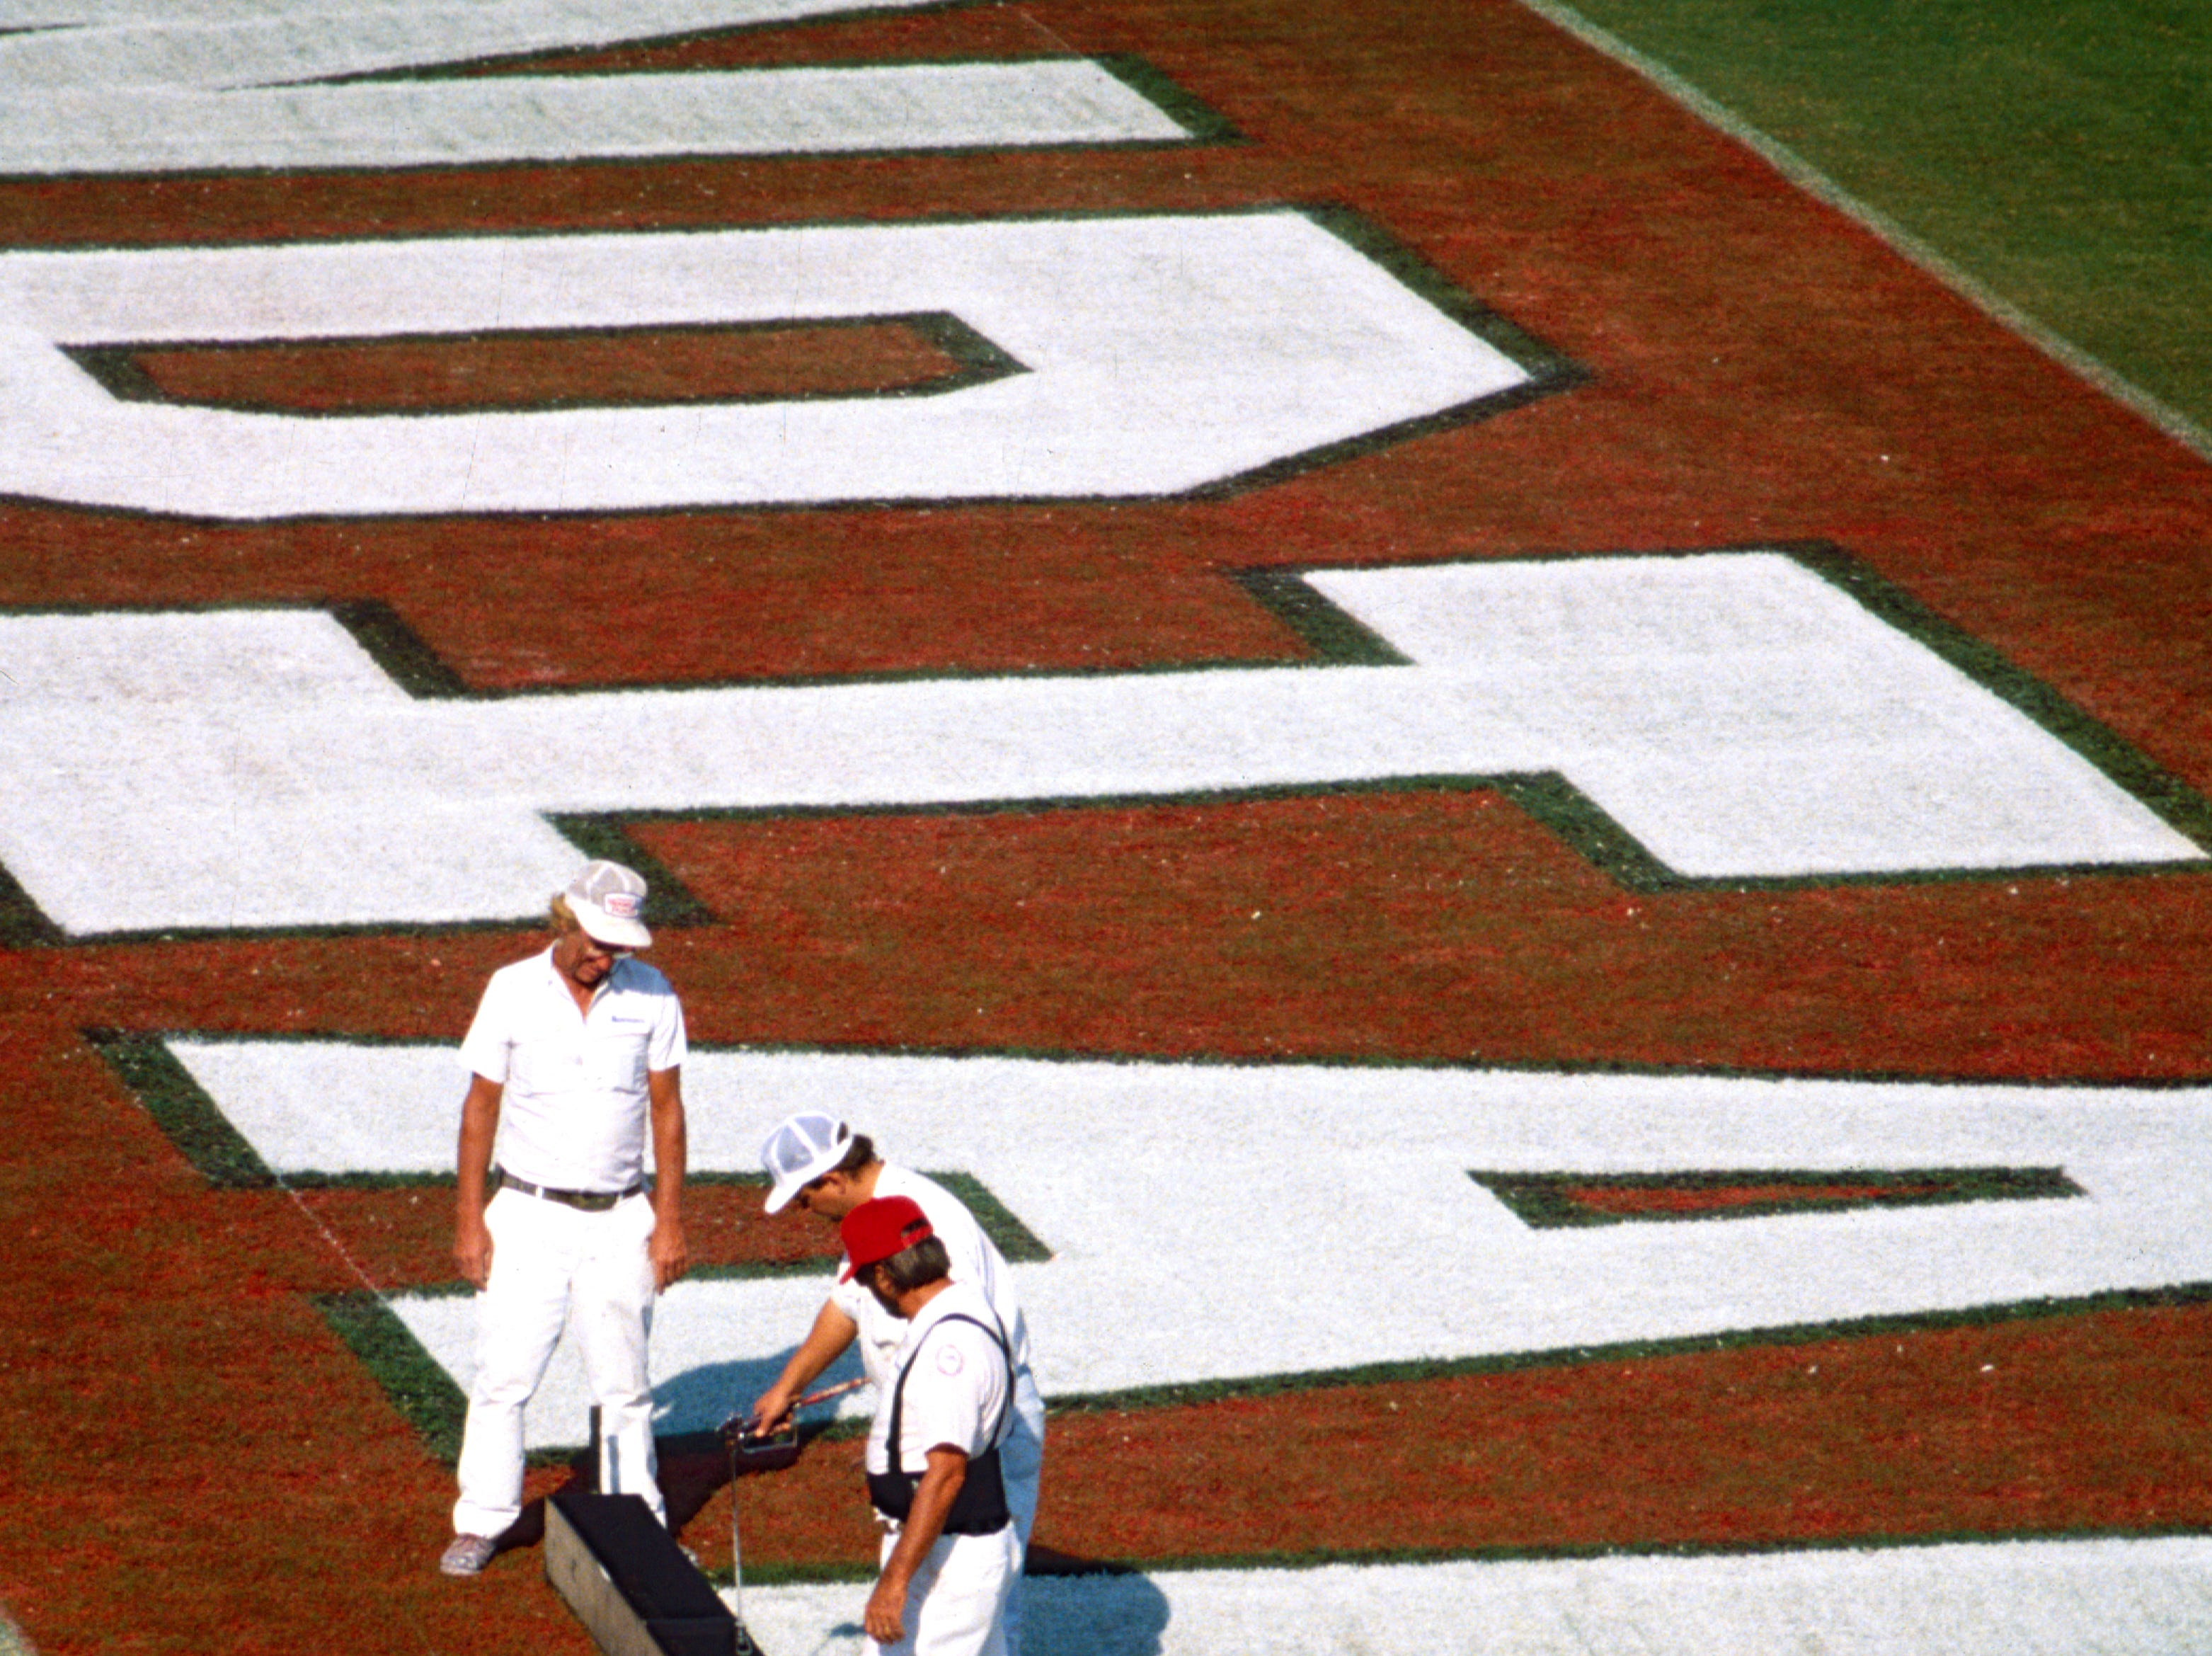 December 2, 1993 - School painters were busy getting Vero Beach High School's Citrus Bowl field ready for a playoff football game they had scheduled against Miami Senior in the Class 5A playoffs. Leo Franks (from left), Jimmy Childers and Charlie Windheuser worked on the end zones.